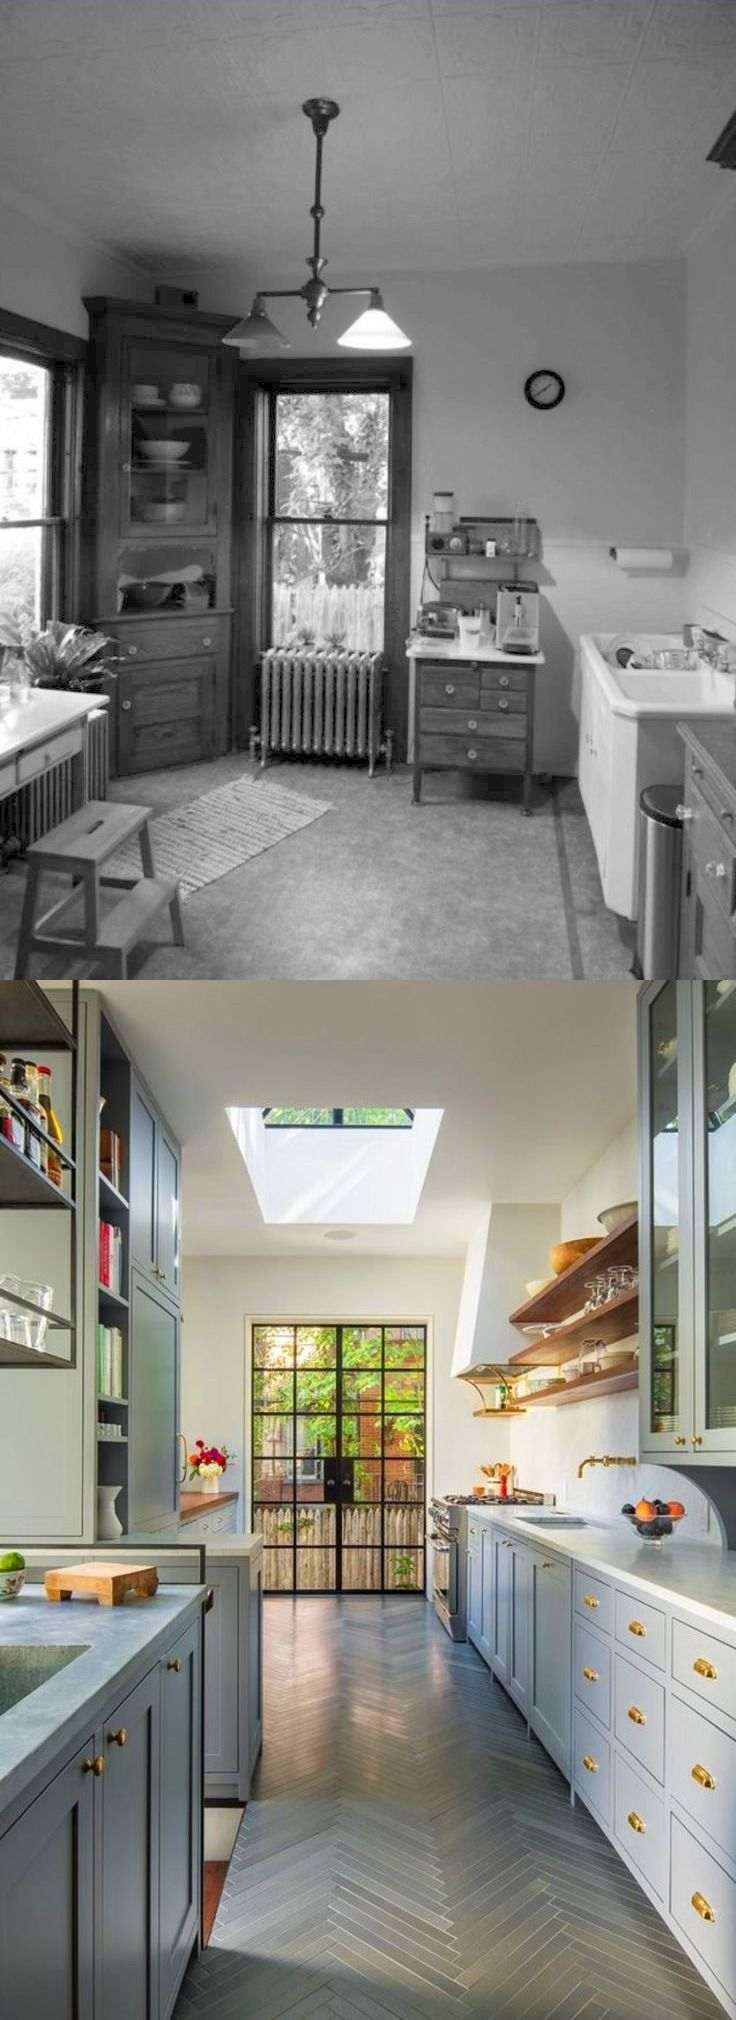 Before and After: 1910 Brooklyn Kitchen Remodel | The desirable ...